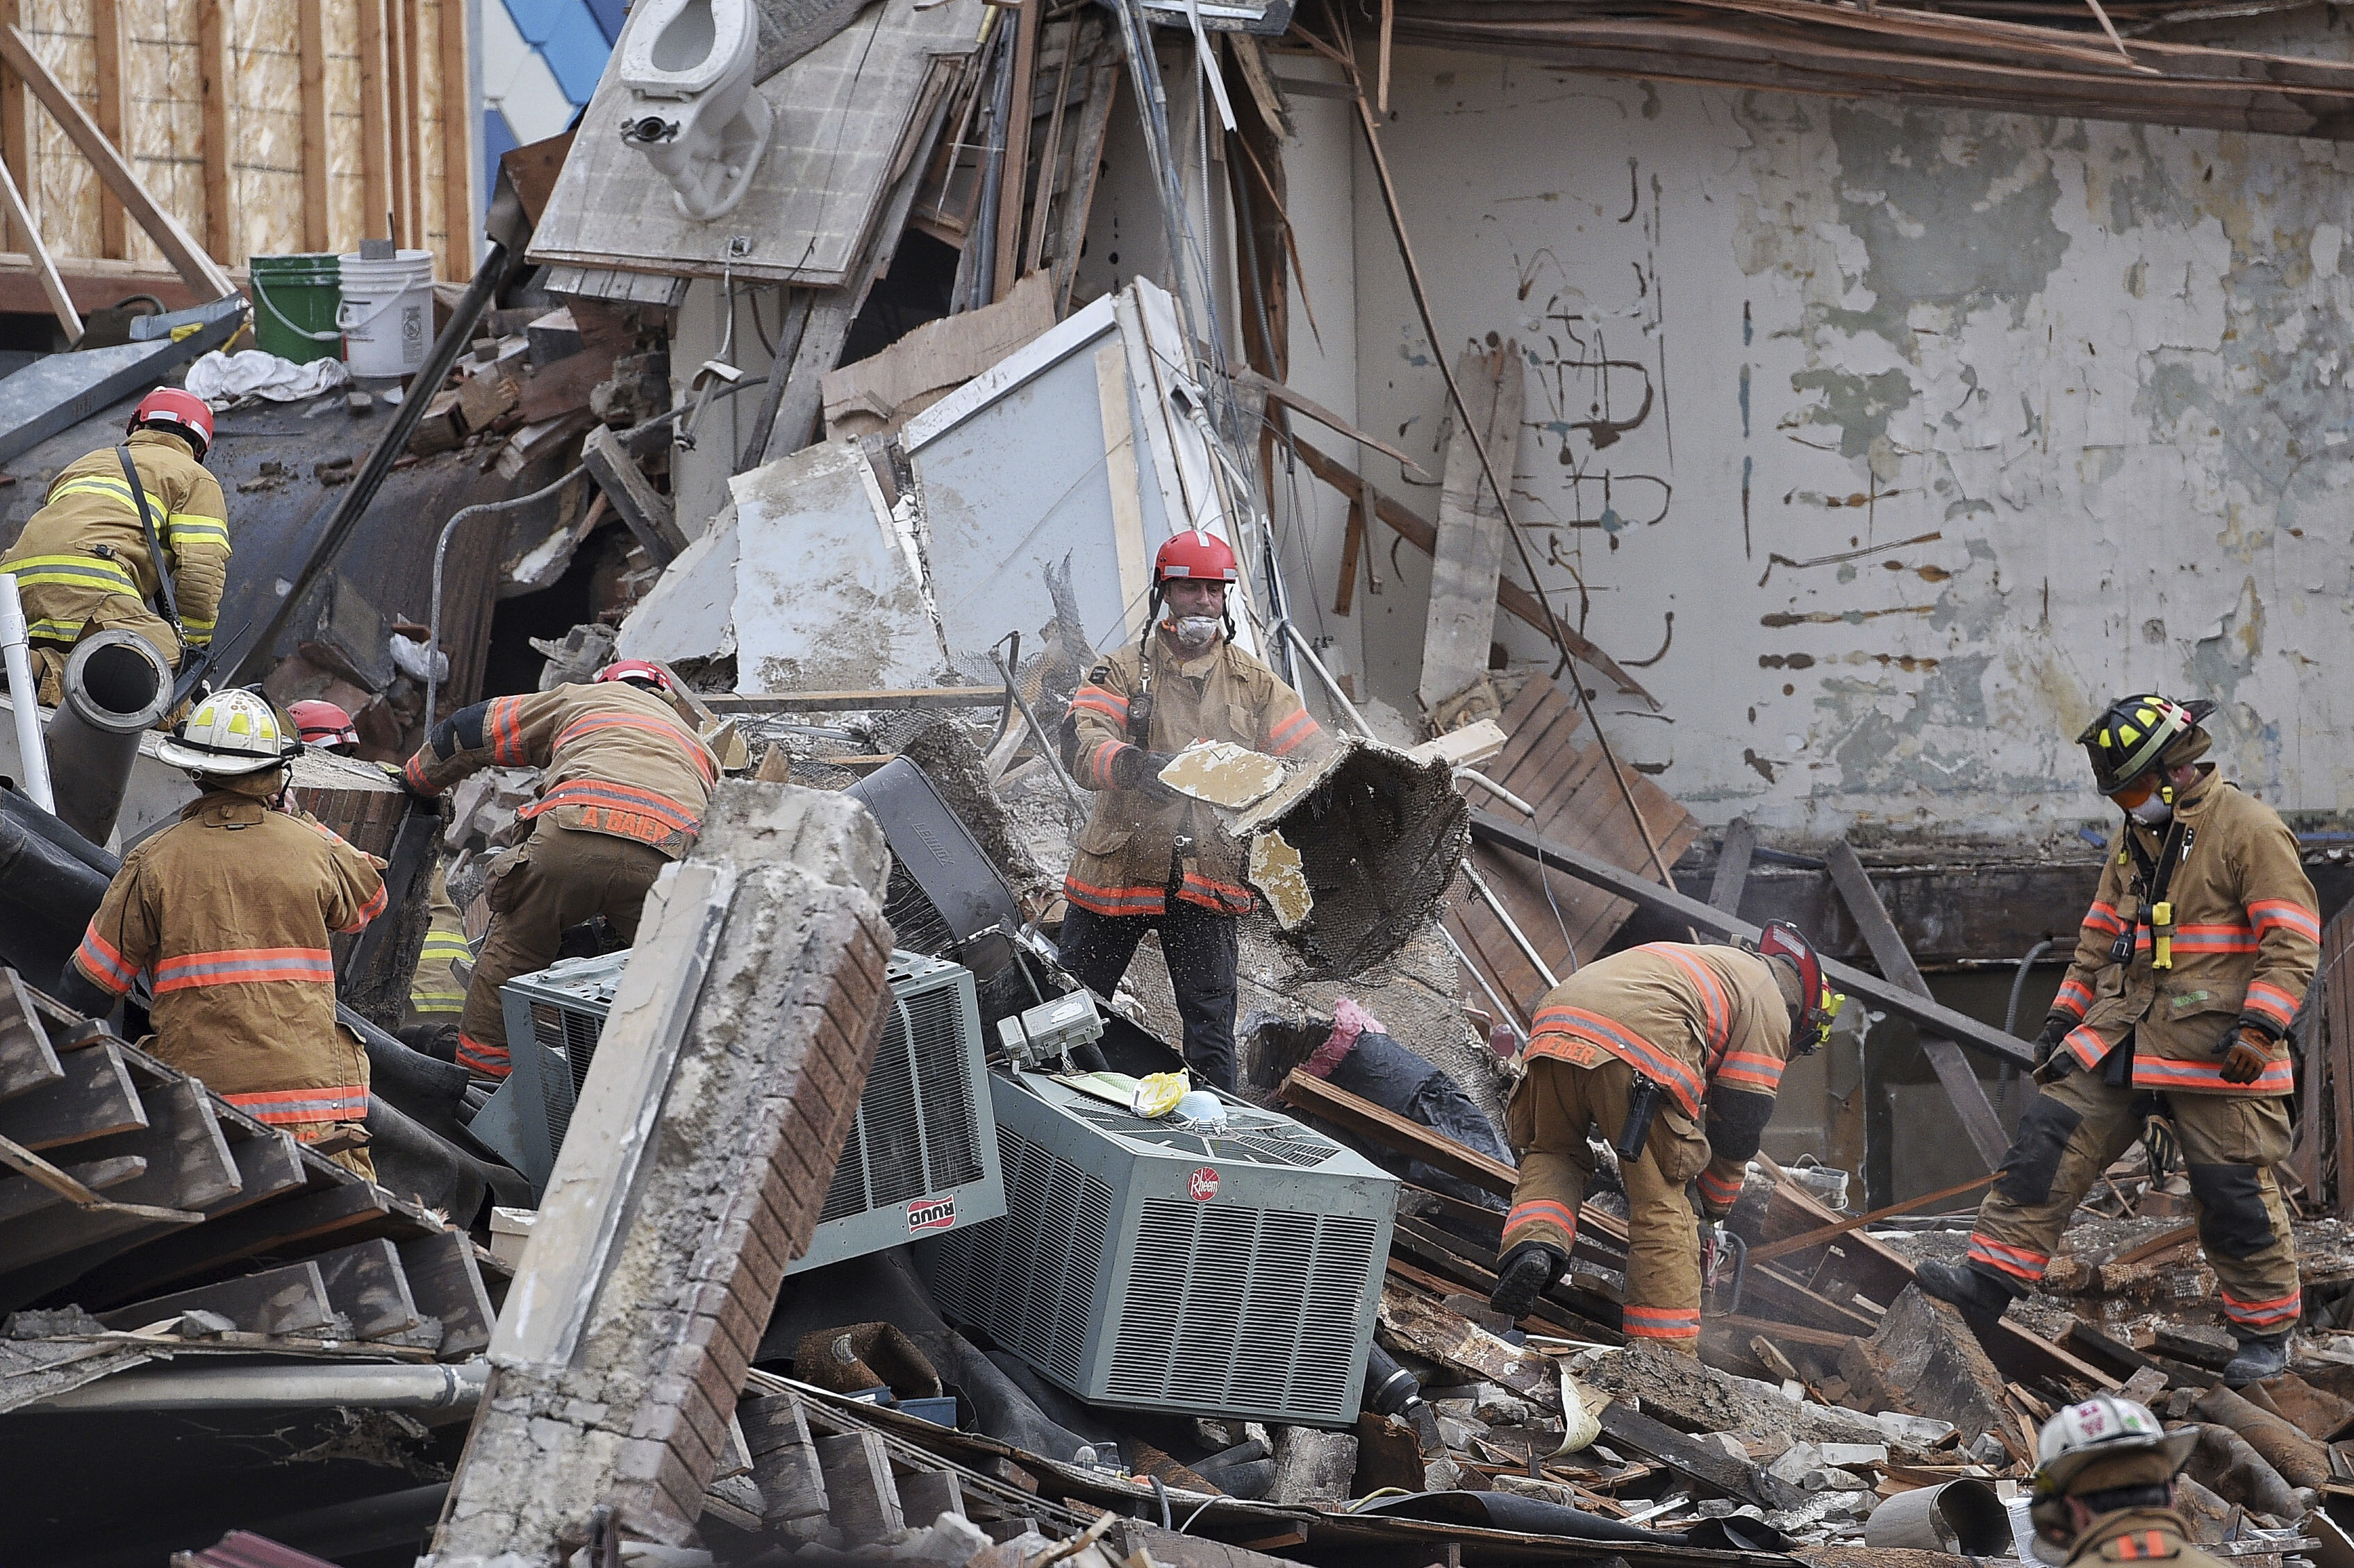 Emergency crews clear debris at the scene of building collapse in Sioux Falls, S.D., Dec. 2, 2016.